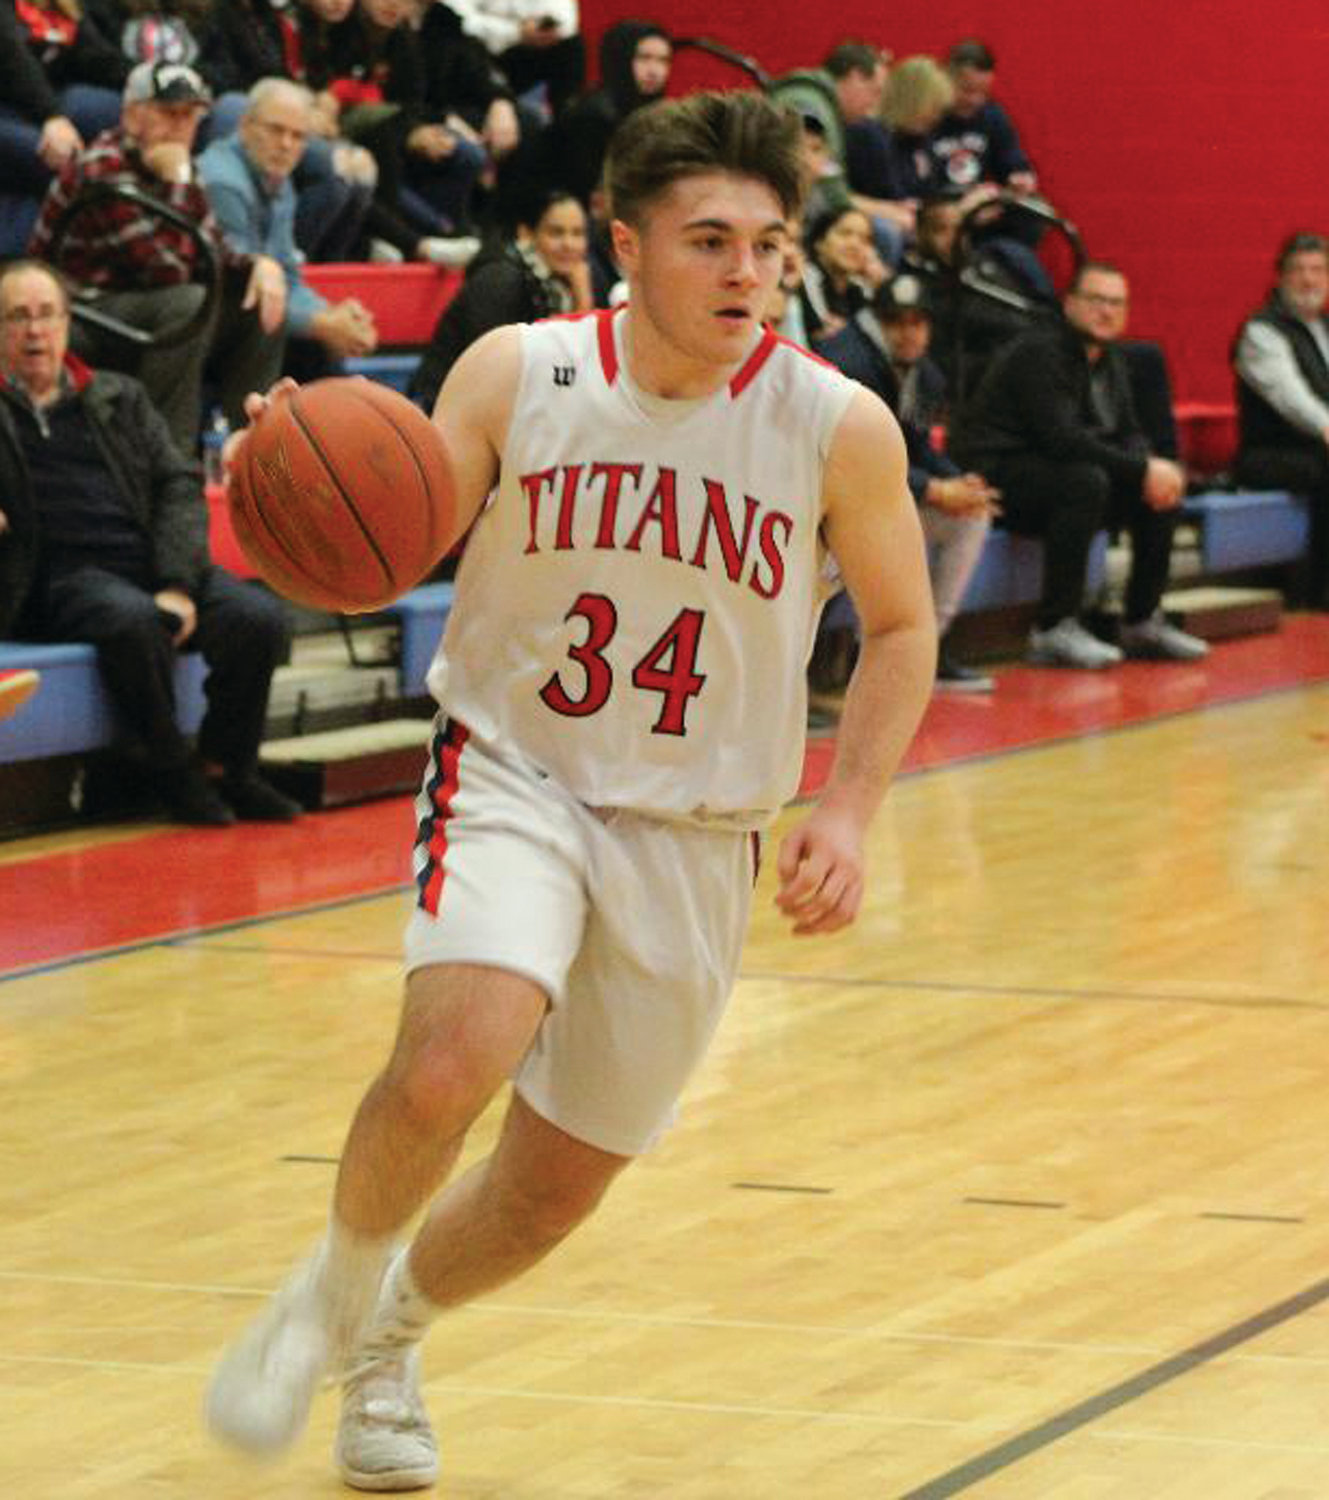 PLAYOFF WIN: Toll Gate's Austin Noon takes the ball up the court against Central Falls in the Division III Prelims last week. Noon scored 15 points in the Titans' 68-55 win over the Warriors. The Titans will now hit the road to take on the Johnston Panthers in the quarterfinals.